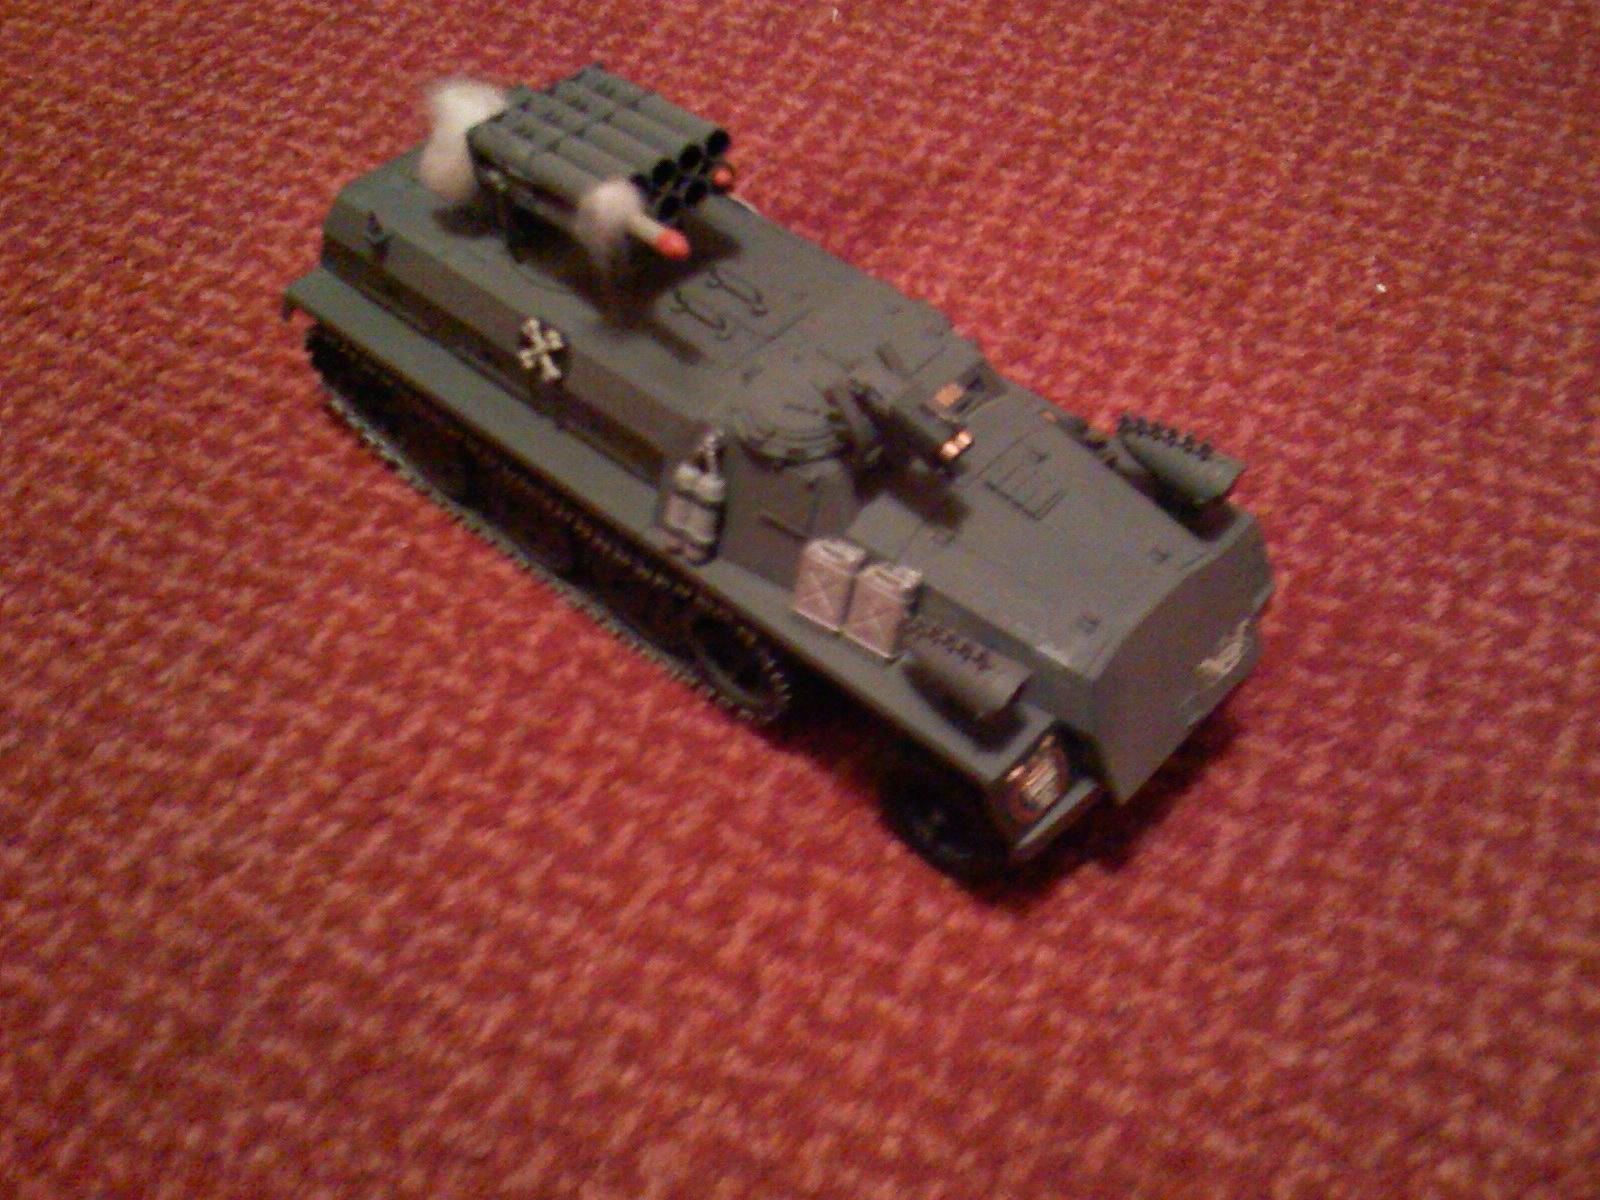 Armored Company, Imperial Guard, Missile Launcher, Warhammer 40,000